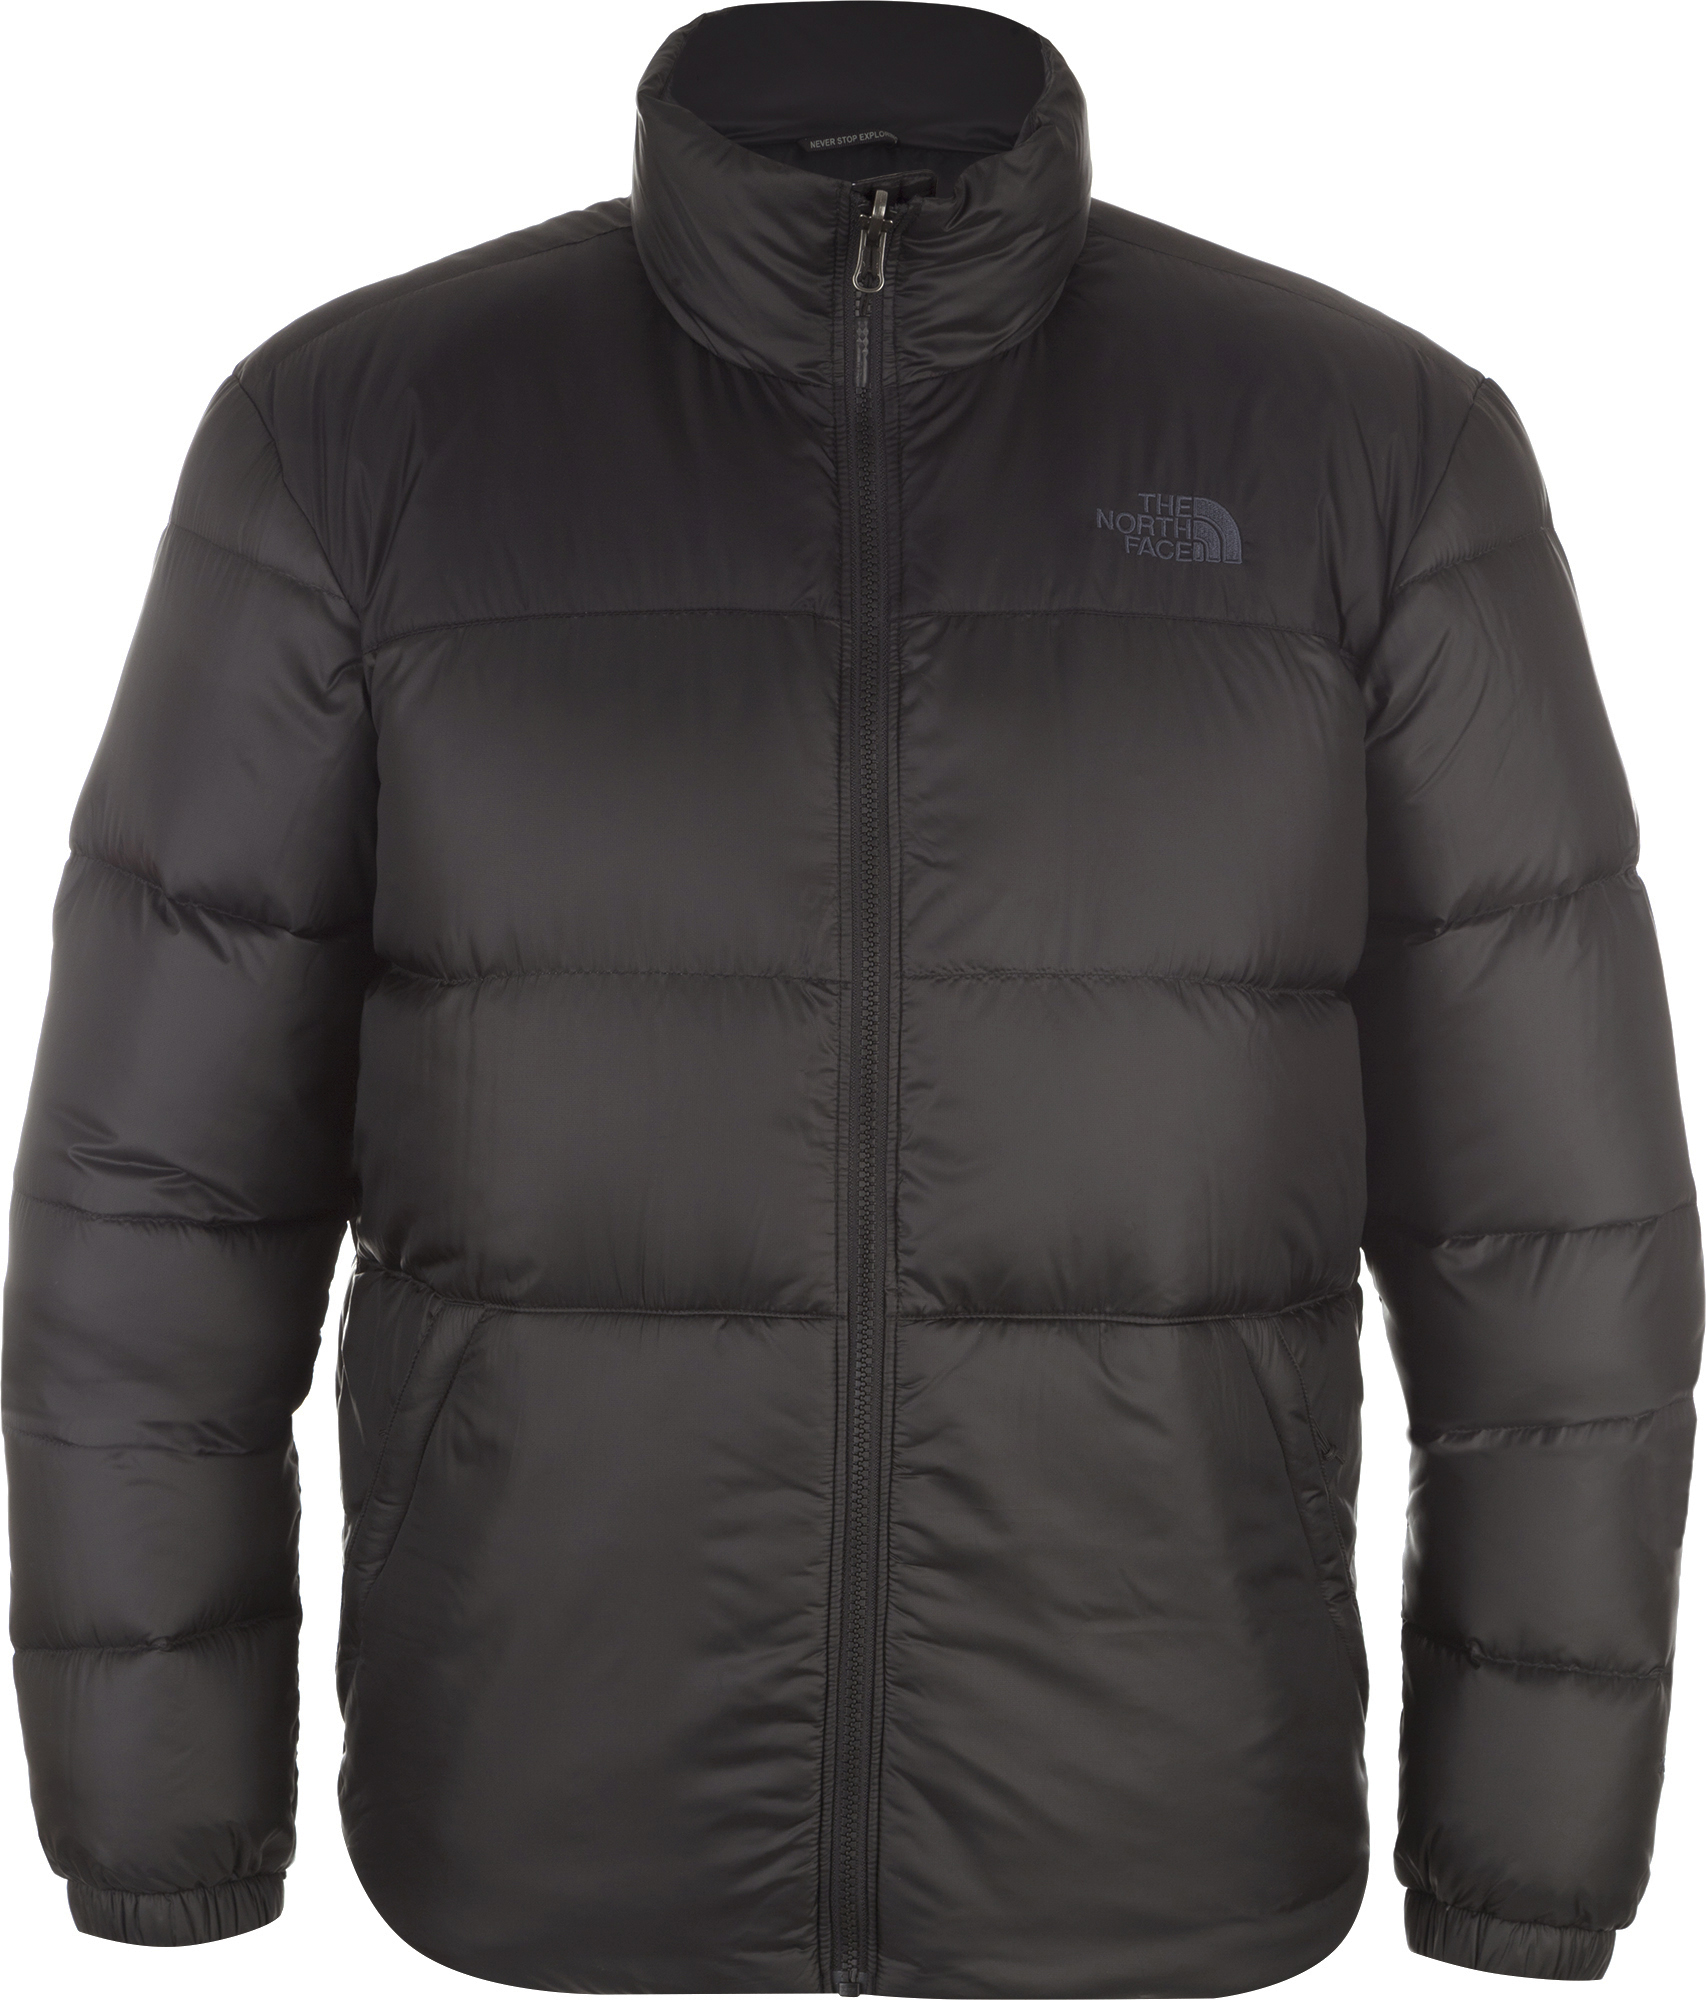 The North Face Куртка пуховая мужская The North Face Men's Nuptse III, размер 52 рюкзак the north face the north face th016buanvr0